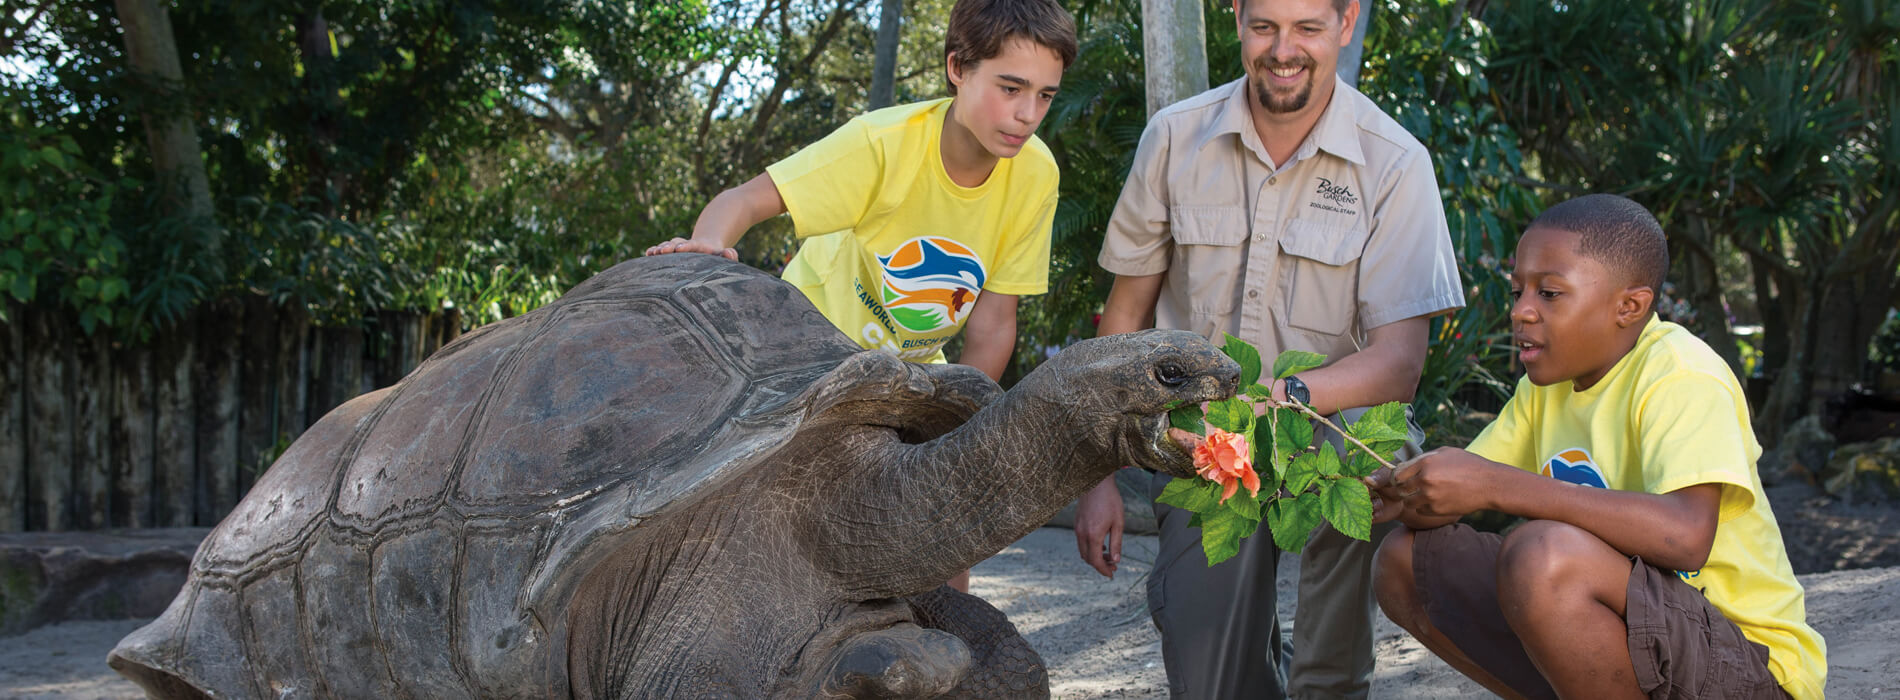 A male host wearing brown clothes and two boys wearing yellow t-shirts feed a large Aldabra tortoise plants at Busch Gardens Tampa Bay animal theme park, located in Florida